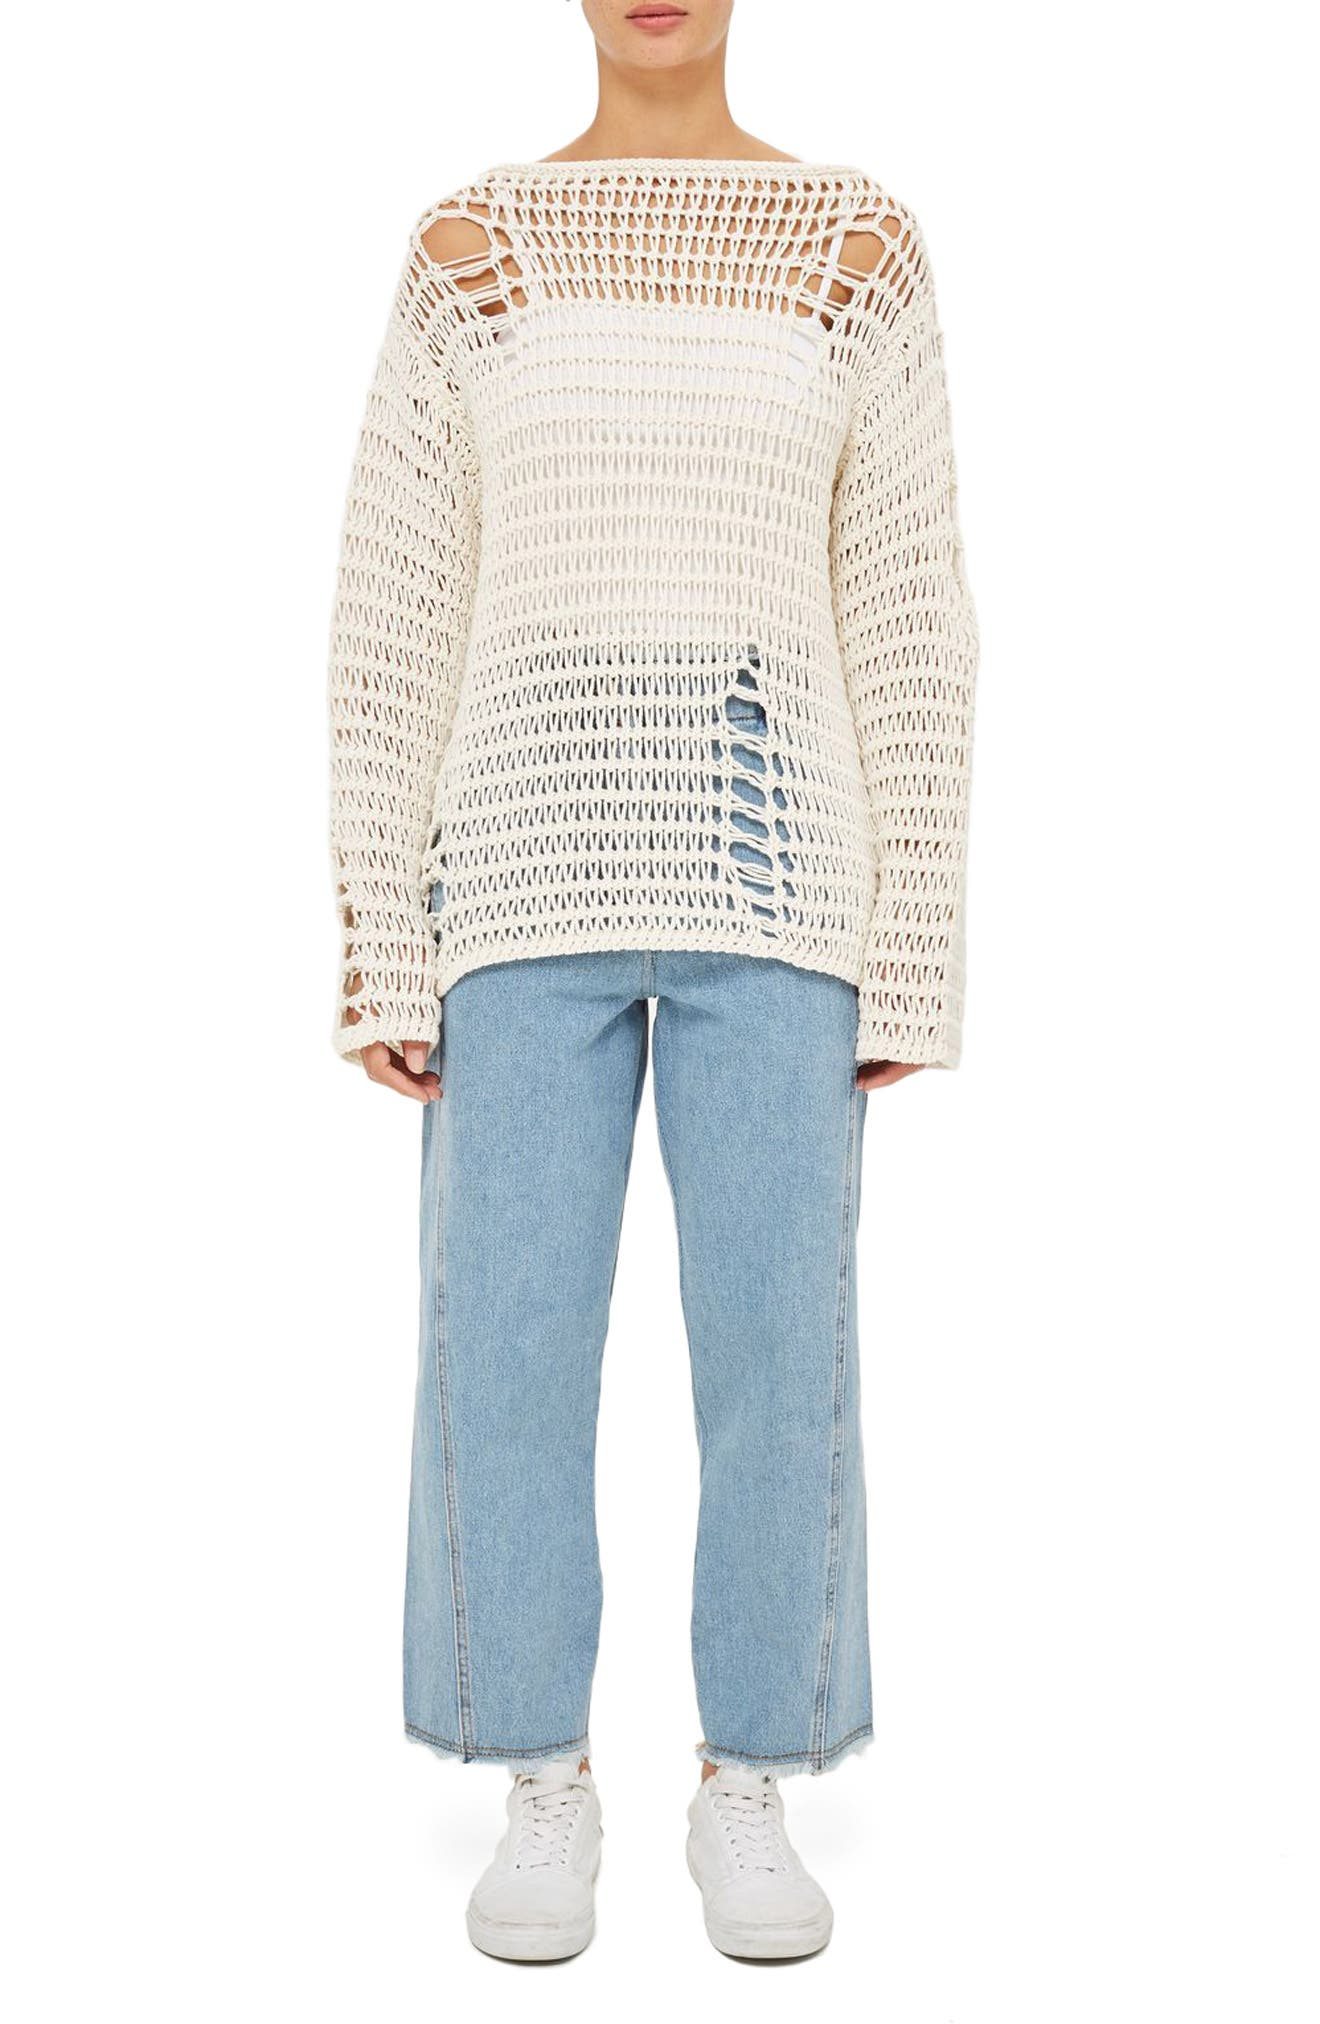 Main Image - Topshop Boutique Distressed Knit Sweater